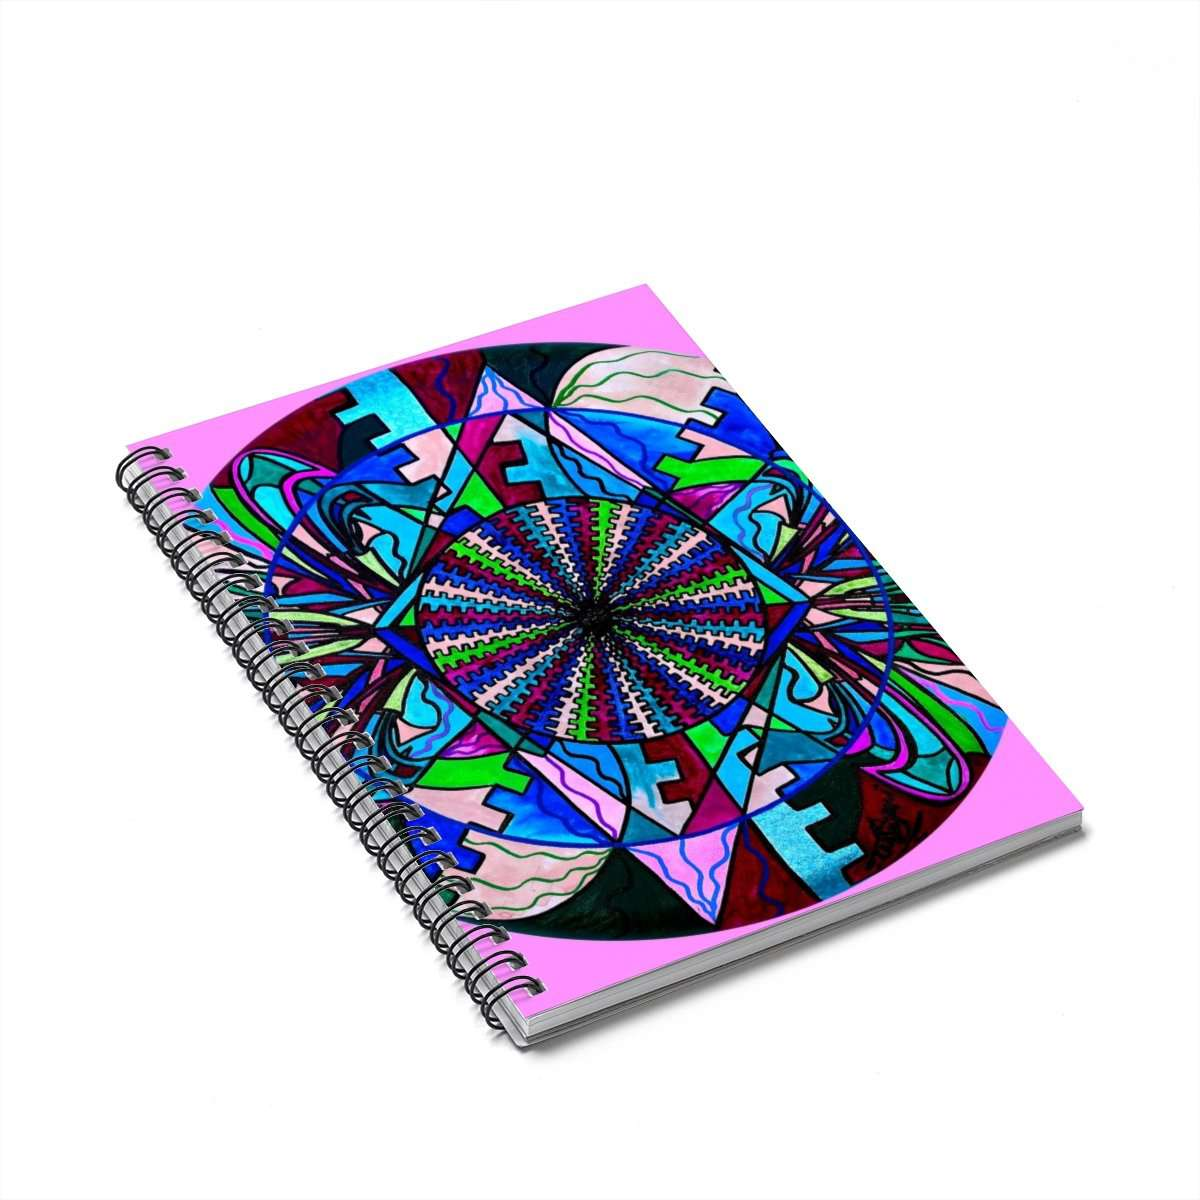 Integrační model - Spiral Notebook